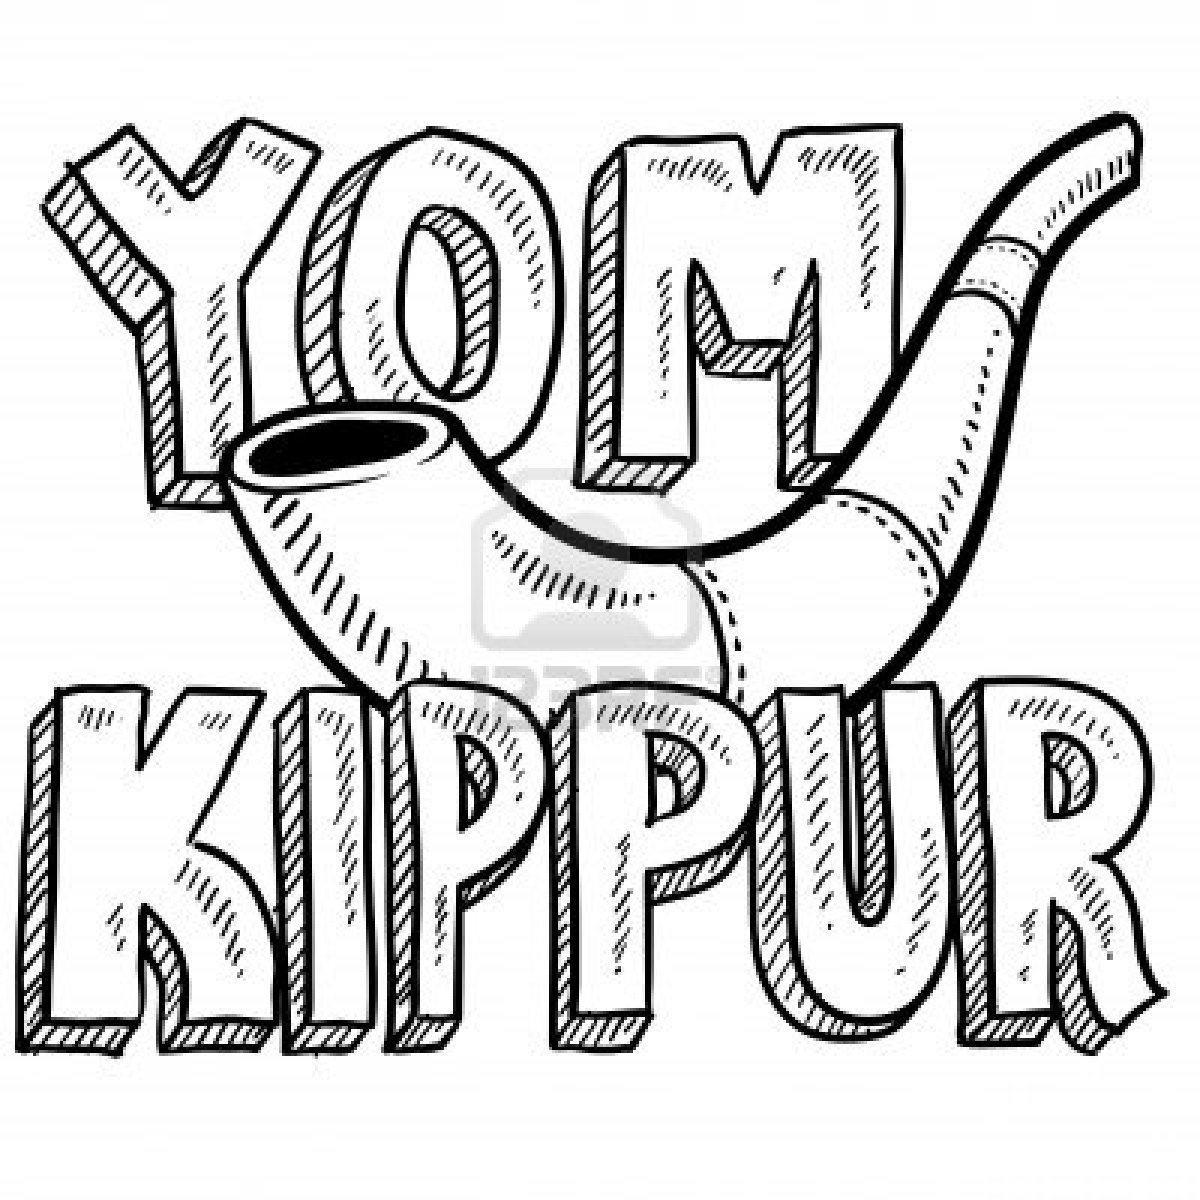 Yom kippur motivational quotes quotesgram for Jewish symbols coloring pages